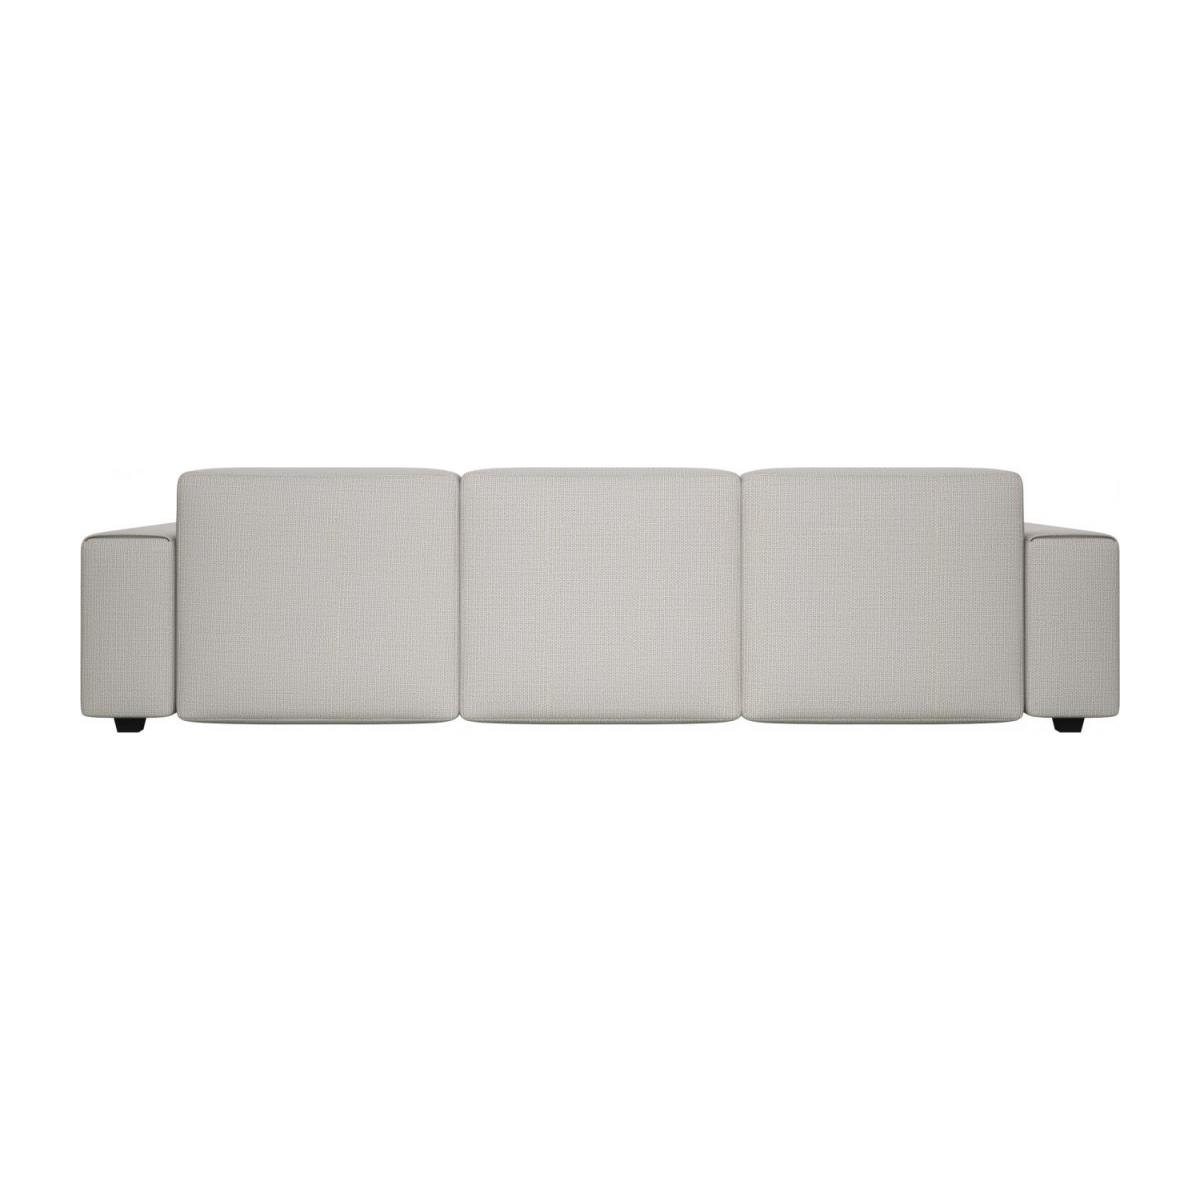 3 seater sofa with chaise longue on the right in Fasoli fabric, snow white n°3